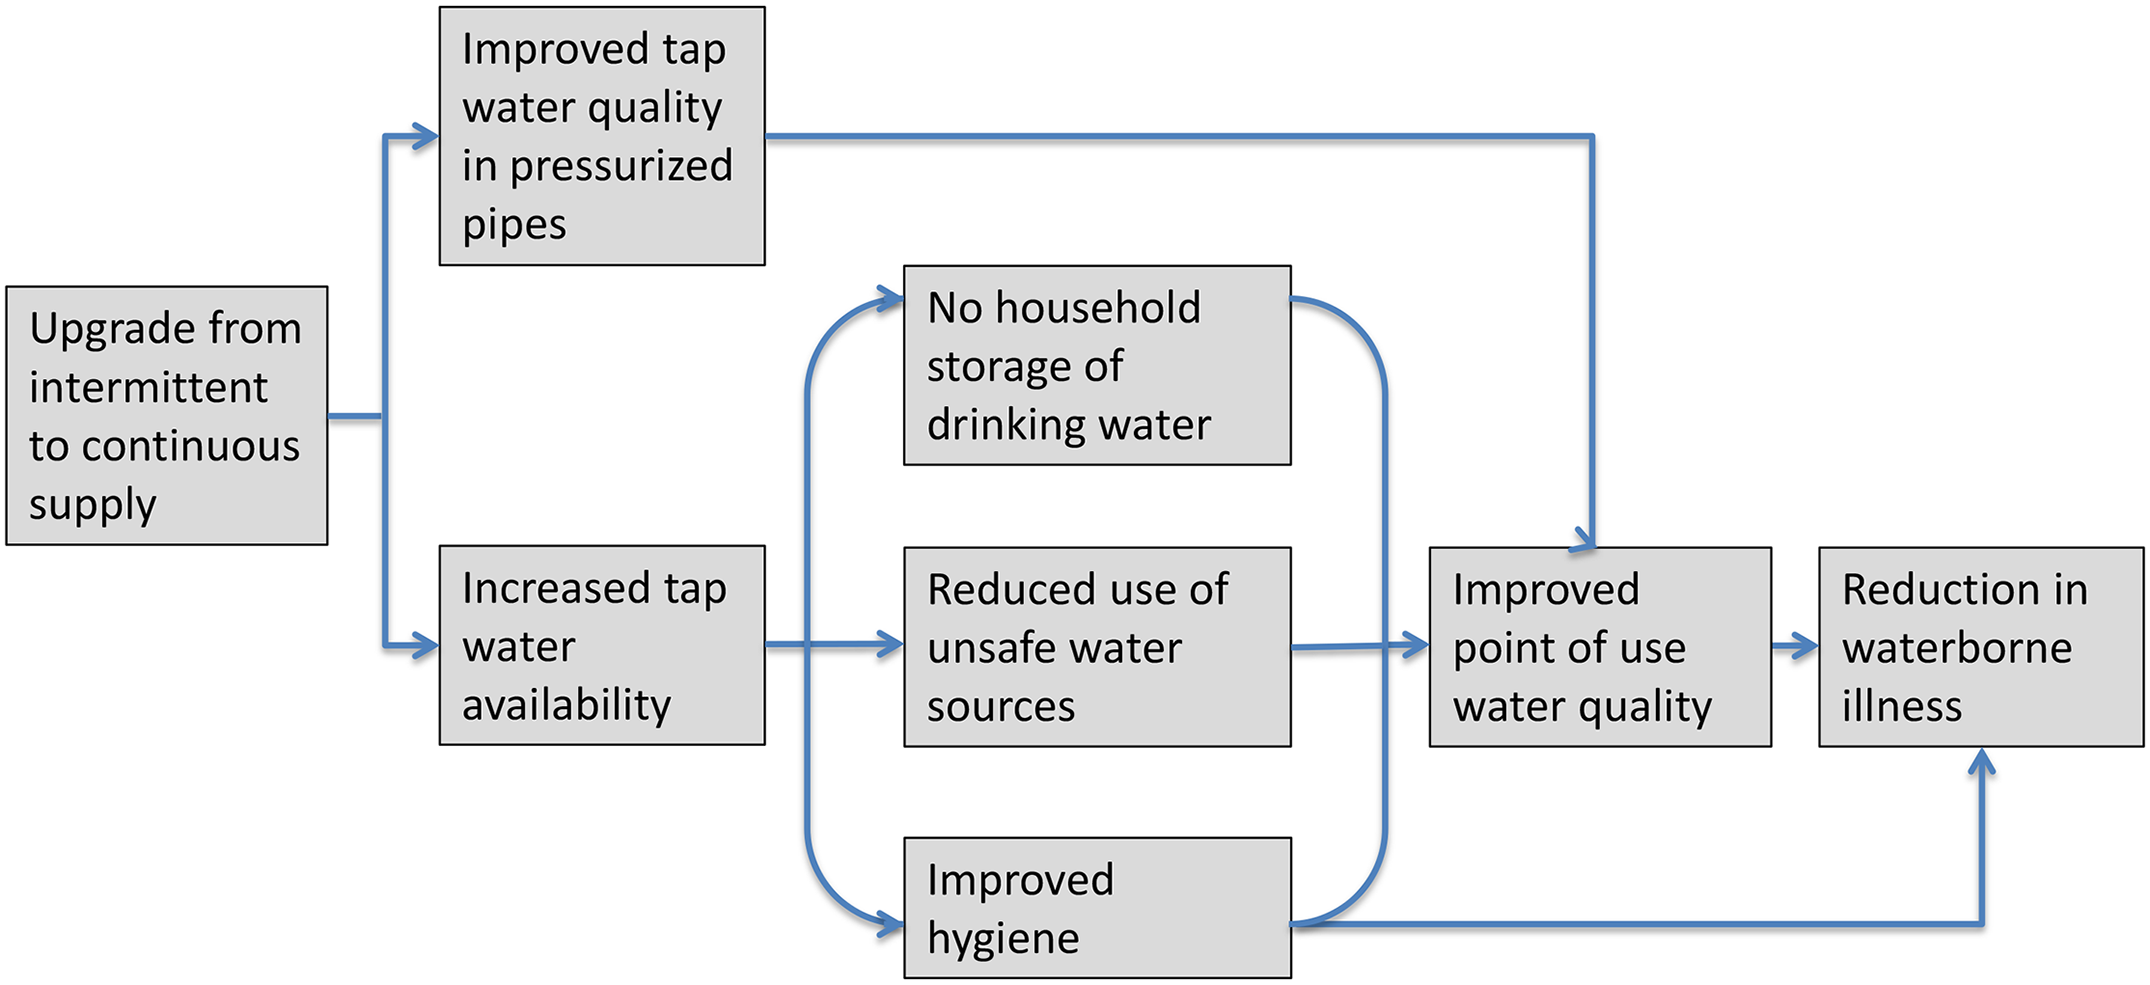 Causal chain between upgrading from intermittent to continuous water supply and reduction in waterborne illness.